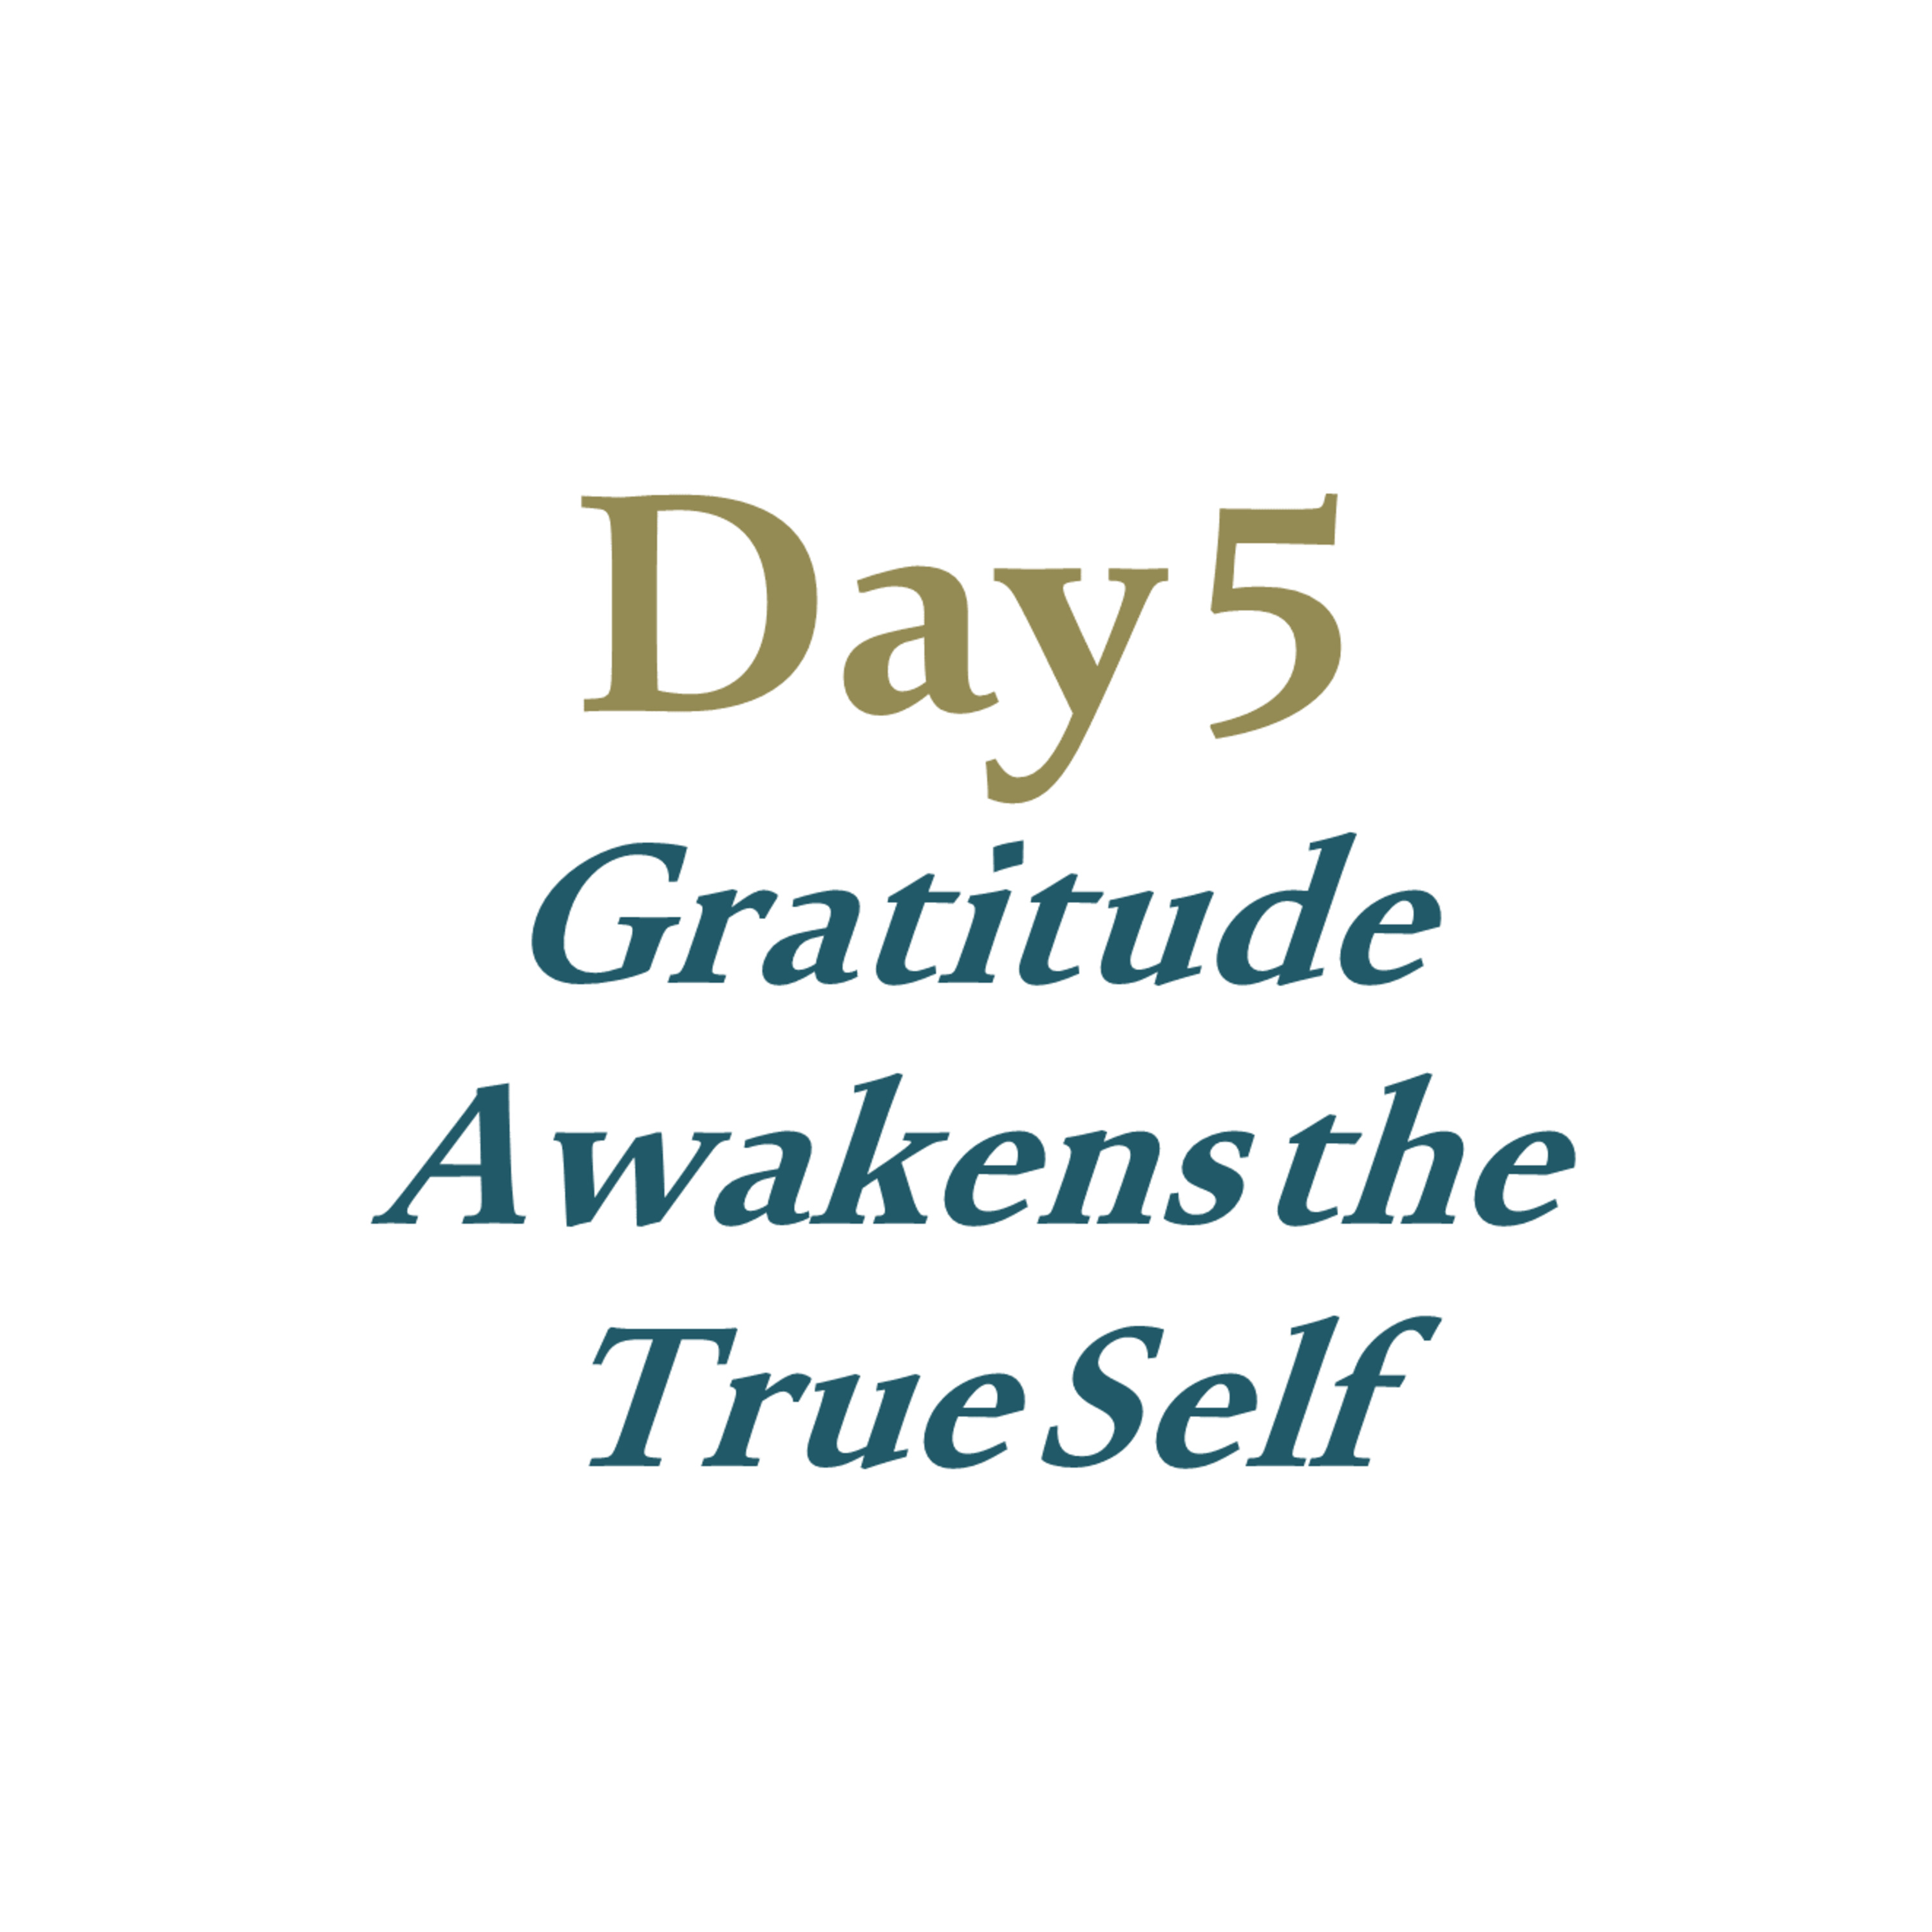 Day 5 - Gratitude Awakens the True Self